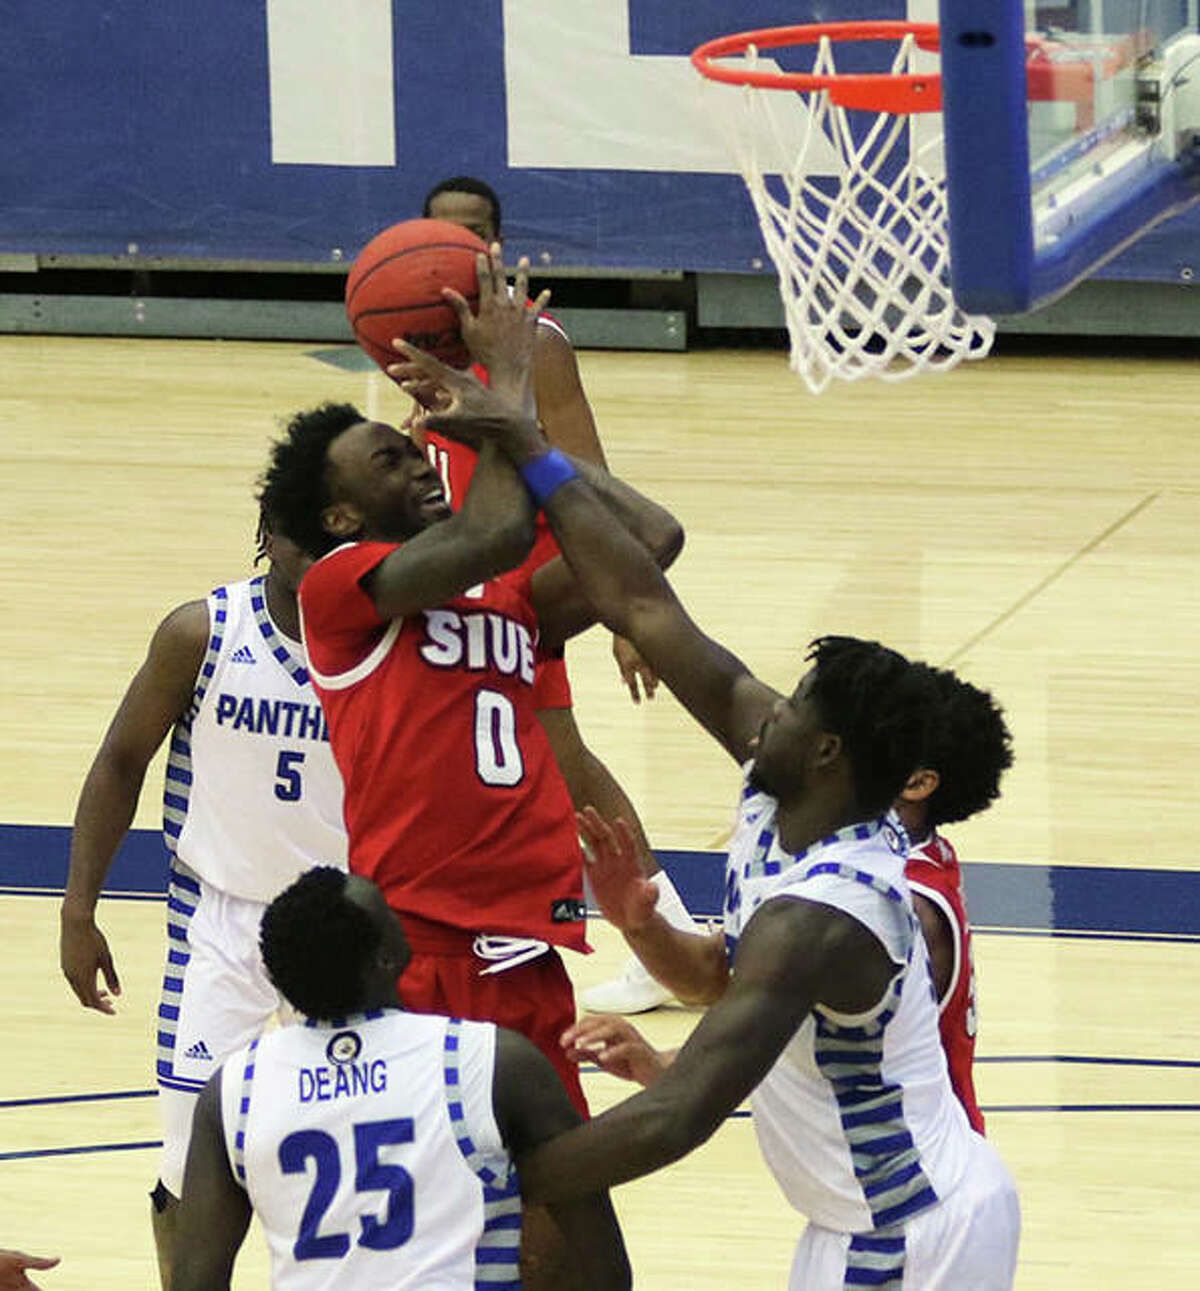 SIUE's Sidney Wilson (0) gets raked on the arm by Eastern Illinois' Madani Diarra (right) but gets no foul call in the lane during the second half Tuesday night at Lantz Arena in Charleston.